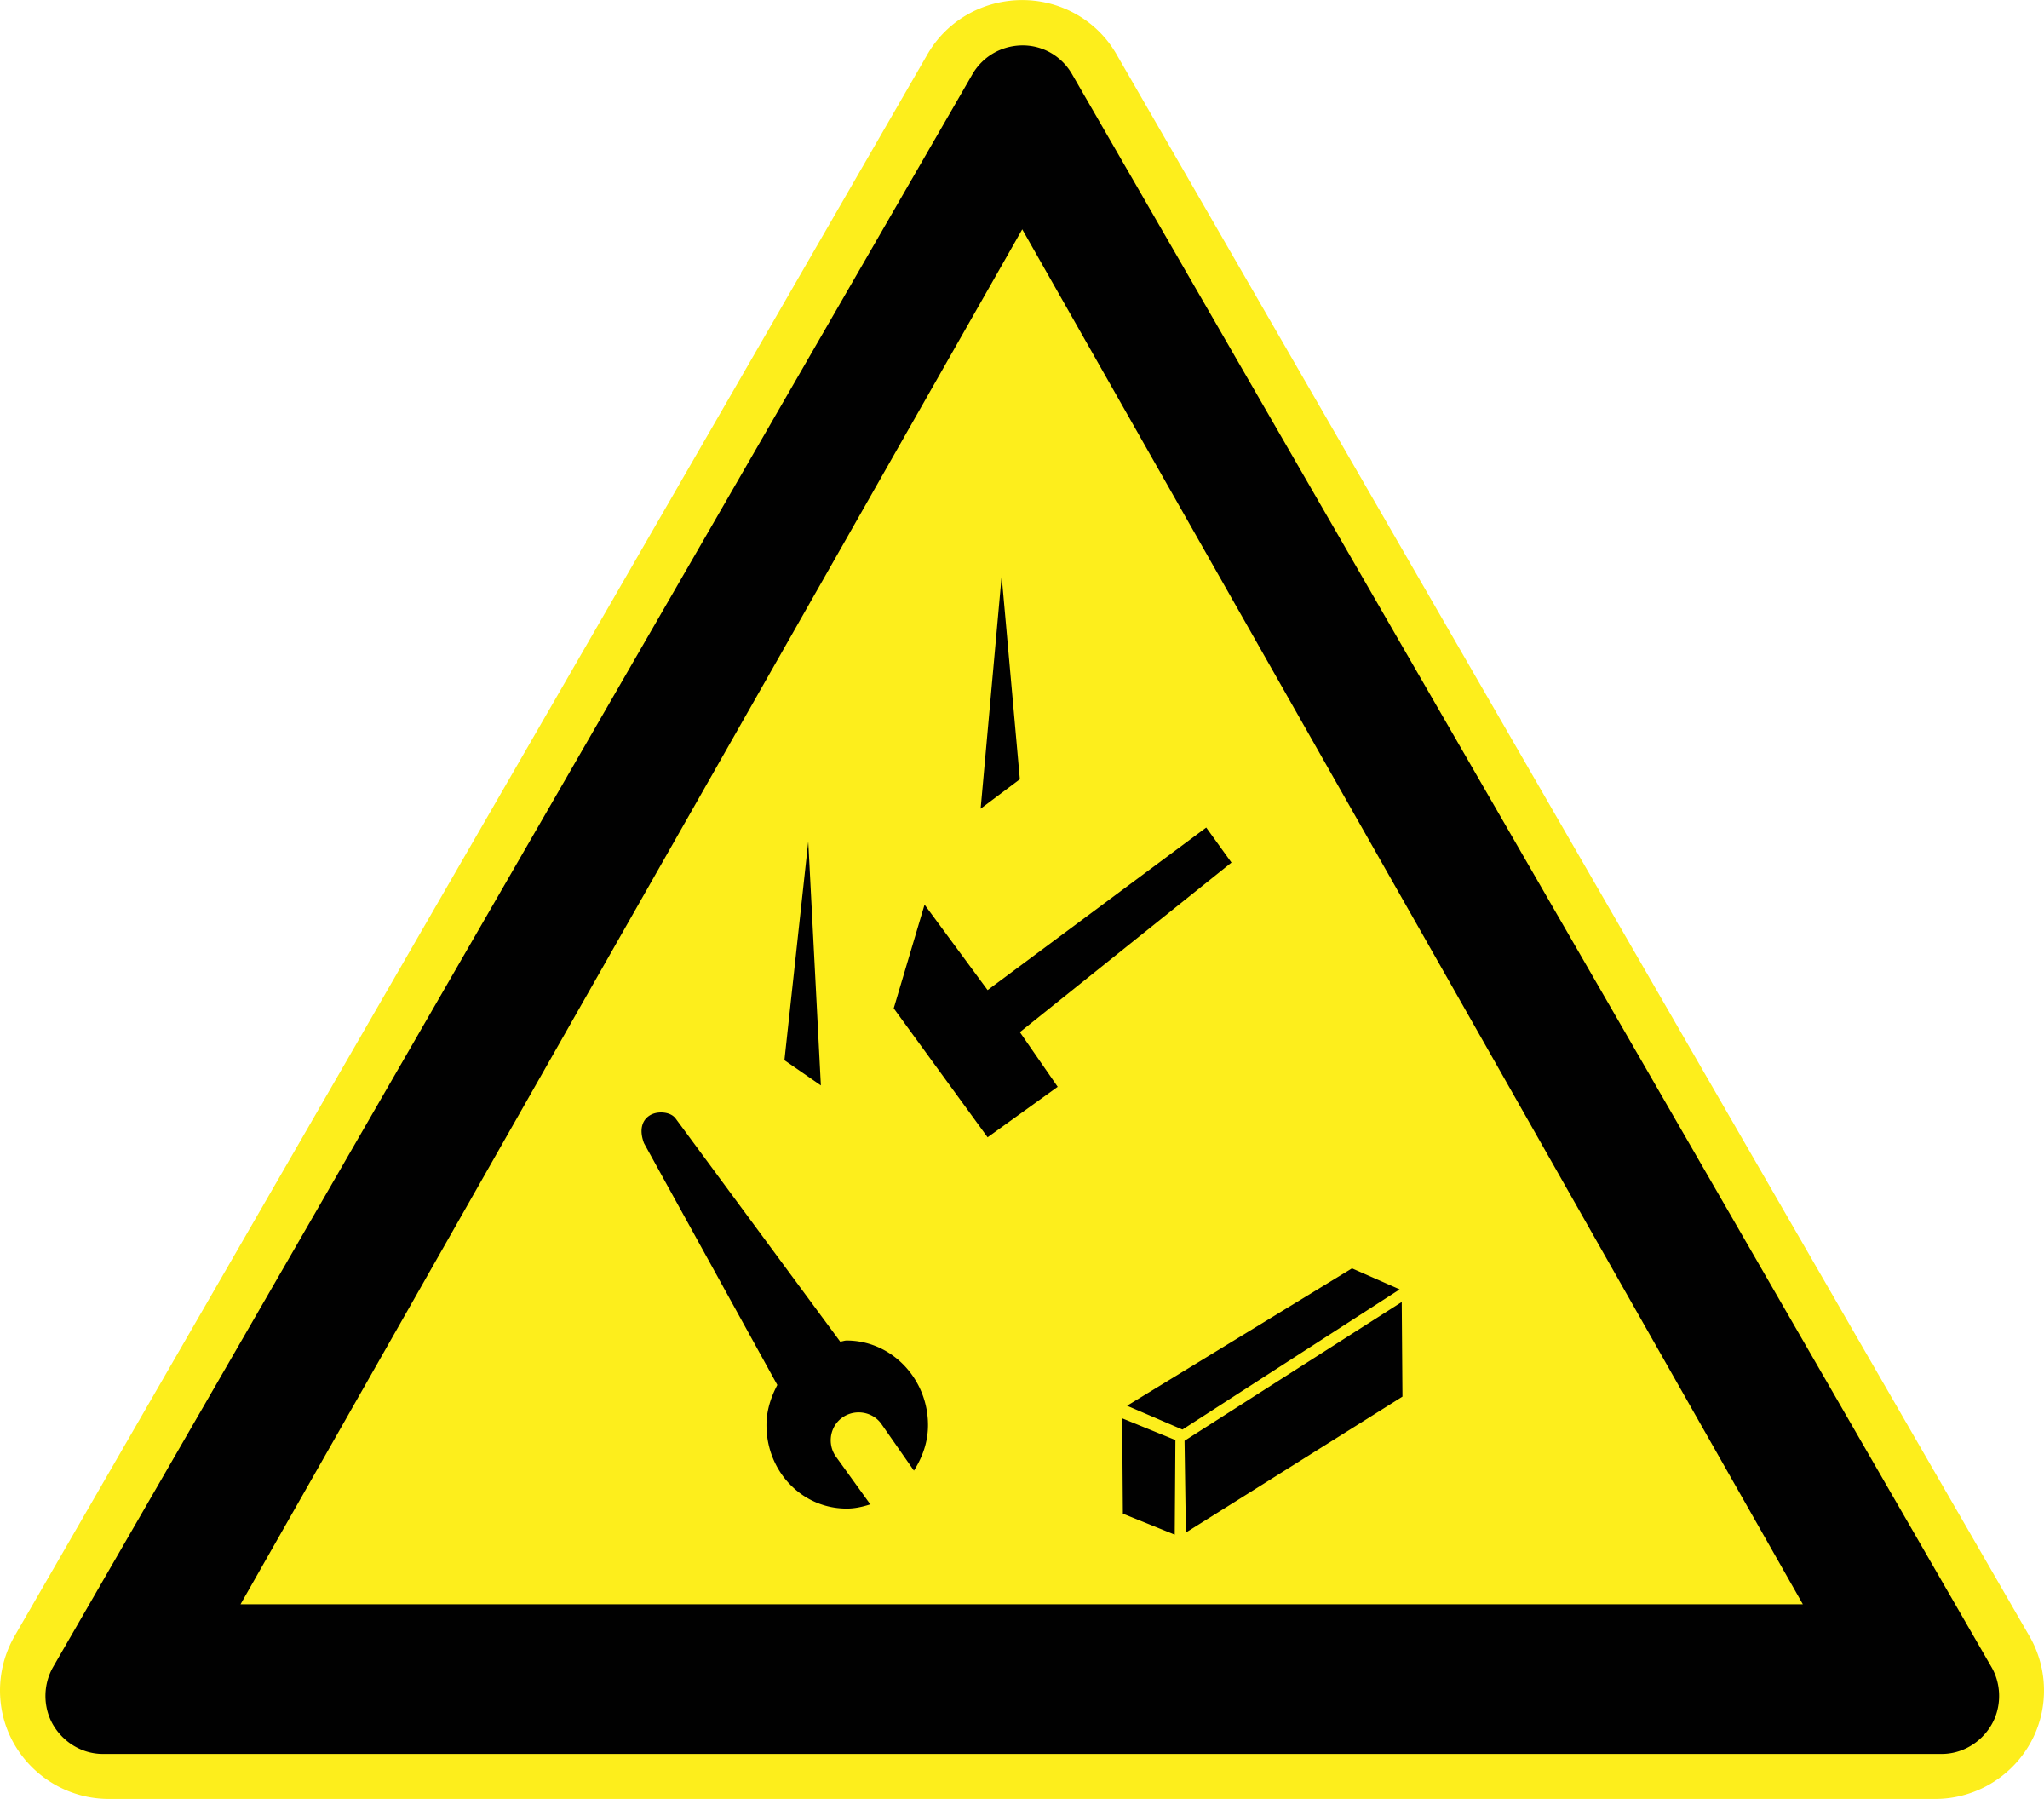 Danger Falling Objects Warning Sign by h0us3s